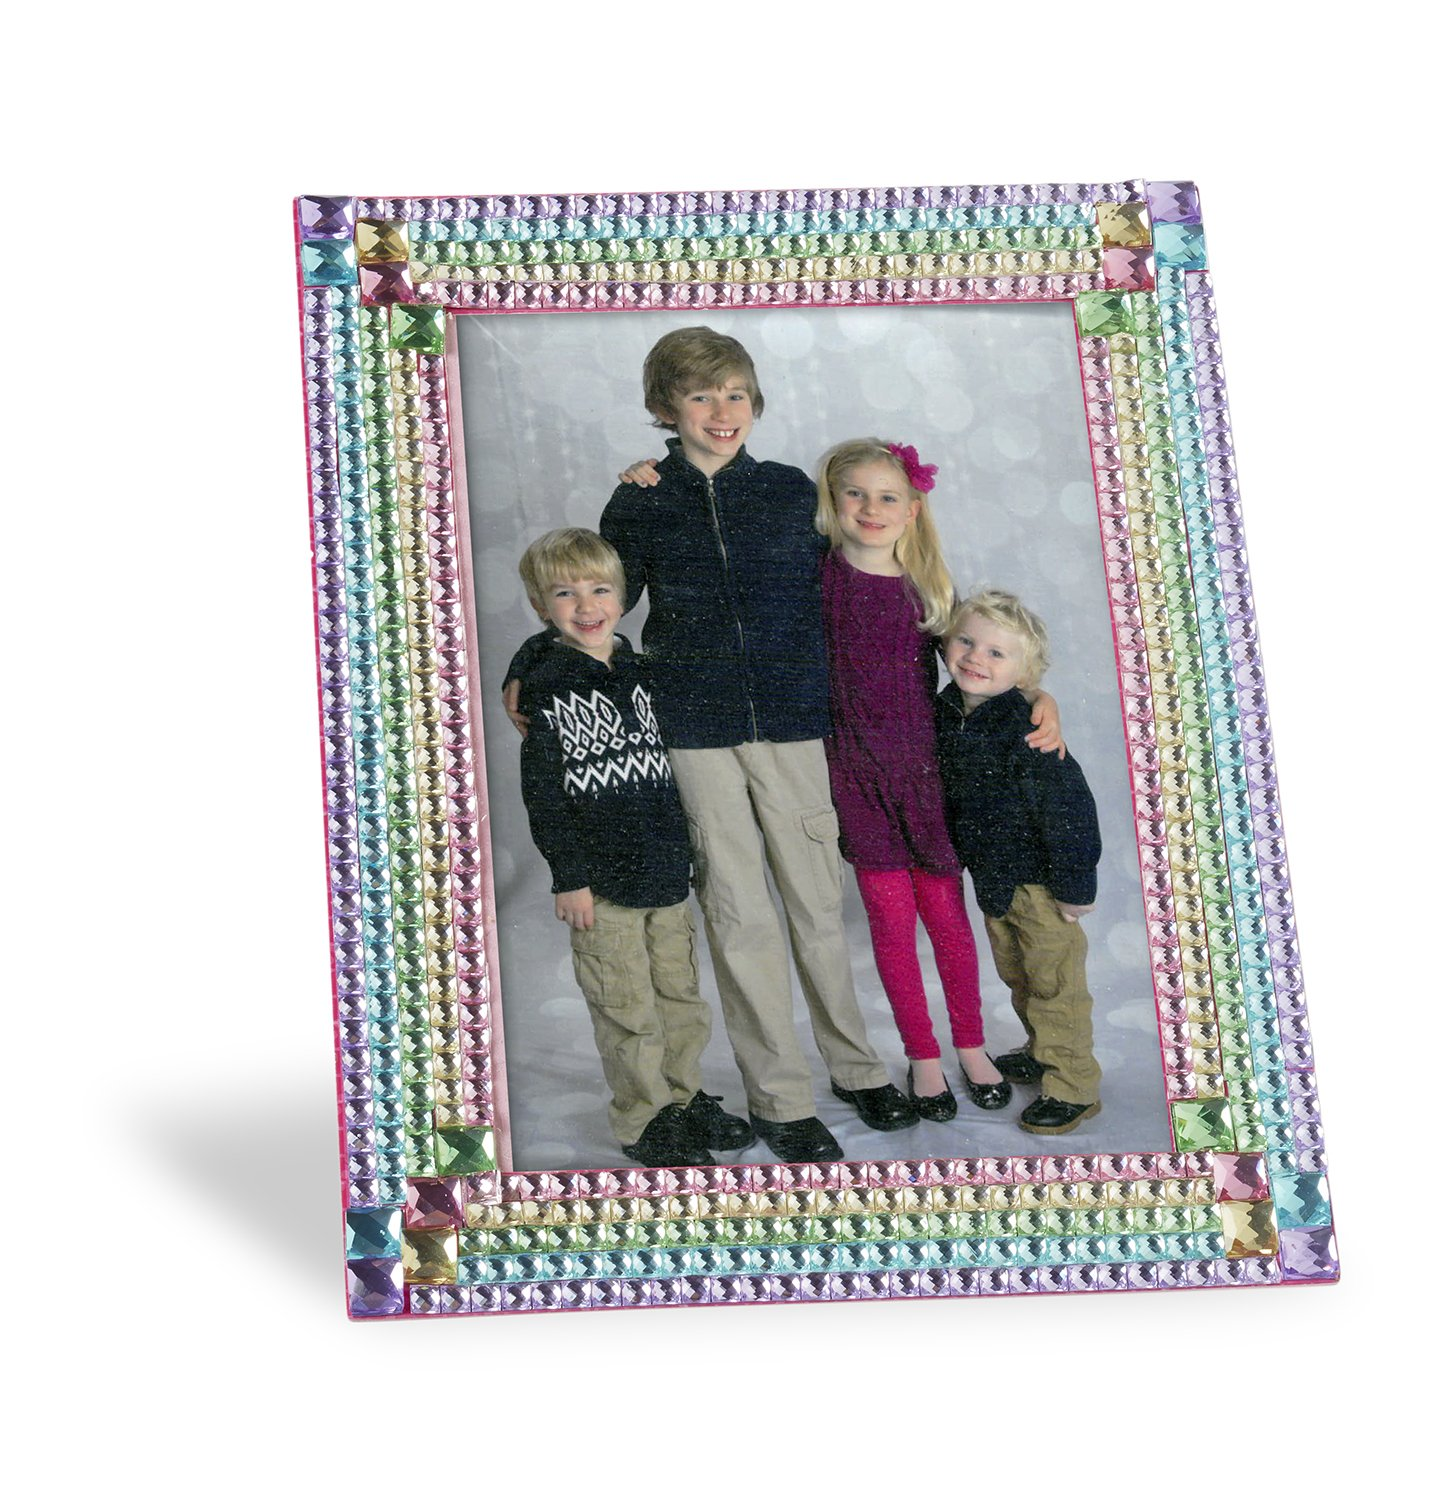 Melissa & Doug - Marco con Piedras de Strass, Press-On Rhinestones Frame (19239): Amazon.es: Juguetes y juegos